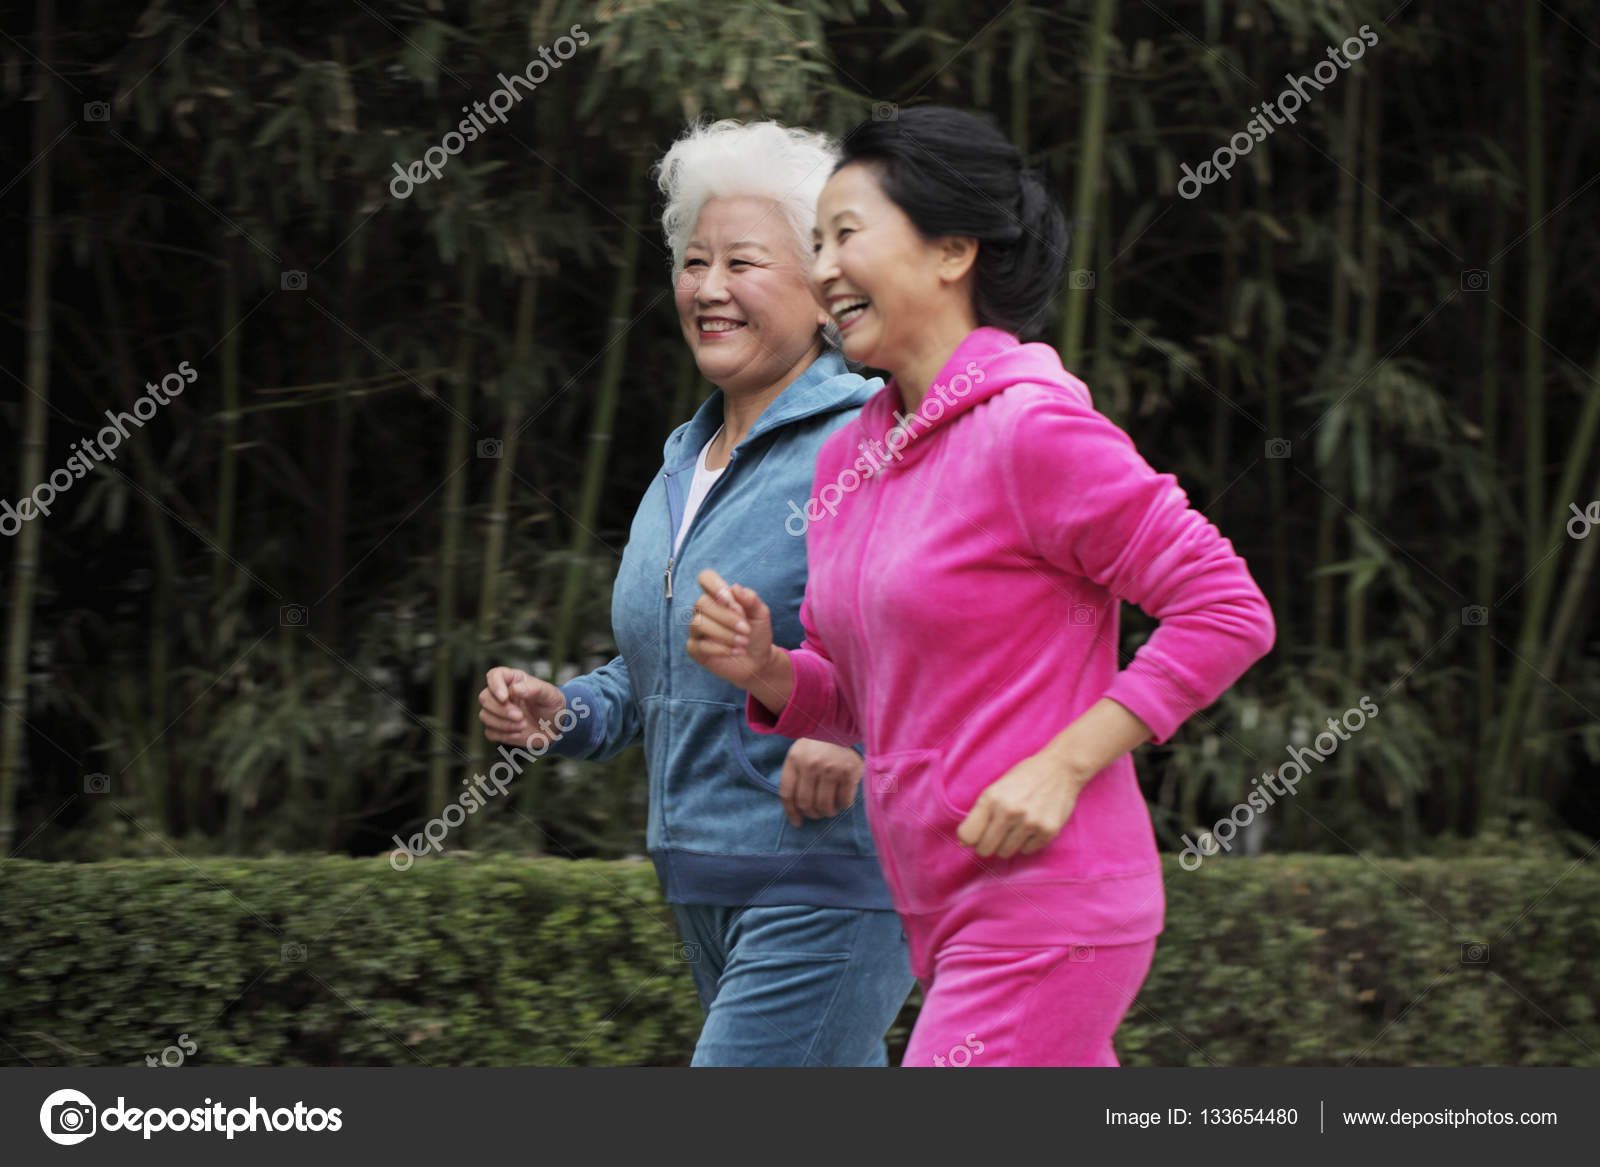 sportive mature women outdoors — stock photo © microstockasia #133654480